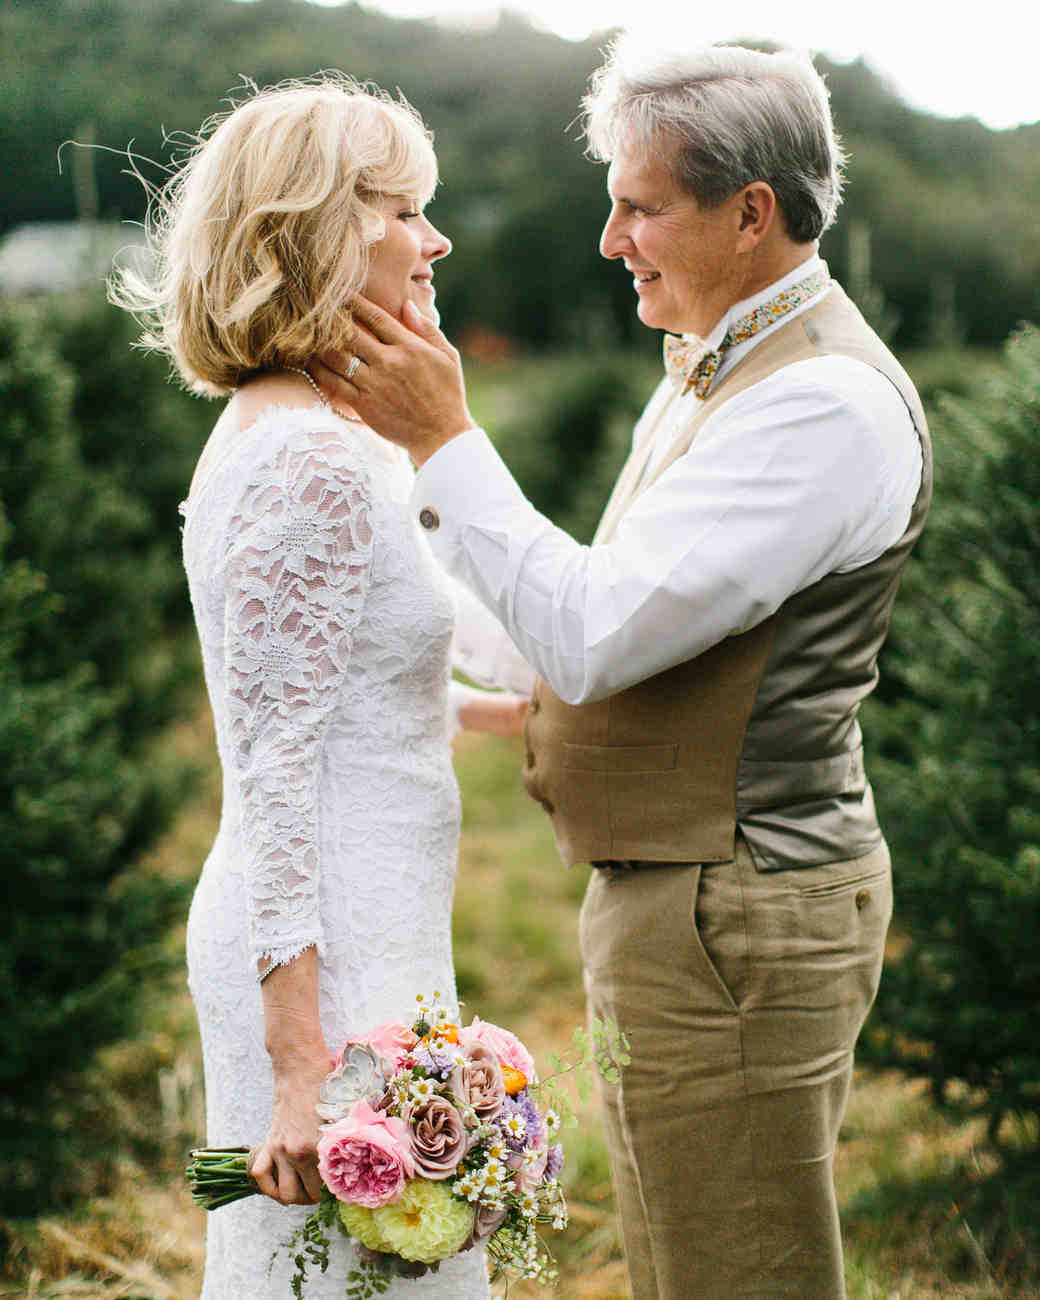 A surprise wedding in plymouth new hampshire martha stewart photography lindsey ocker photography junglespirit Images